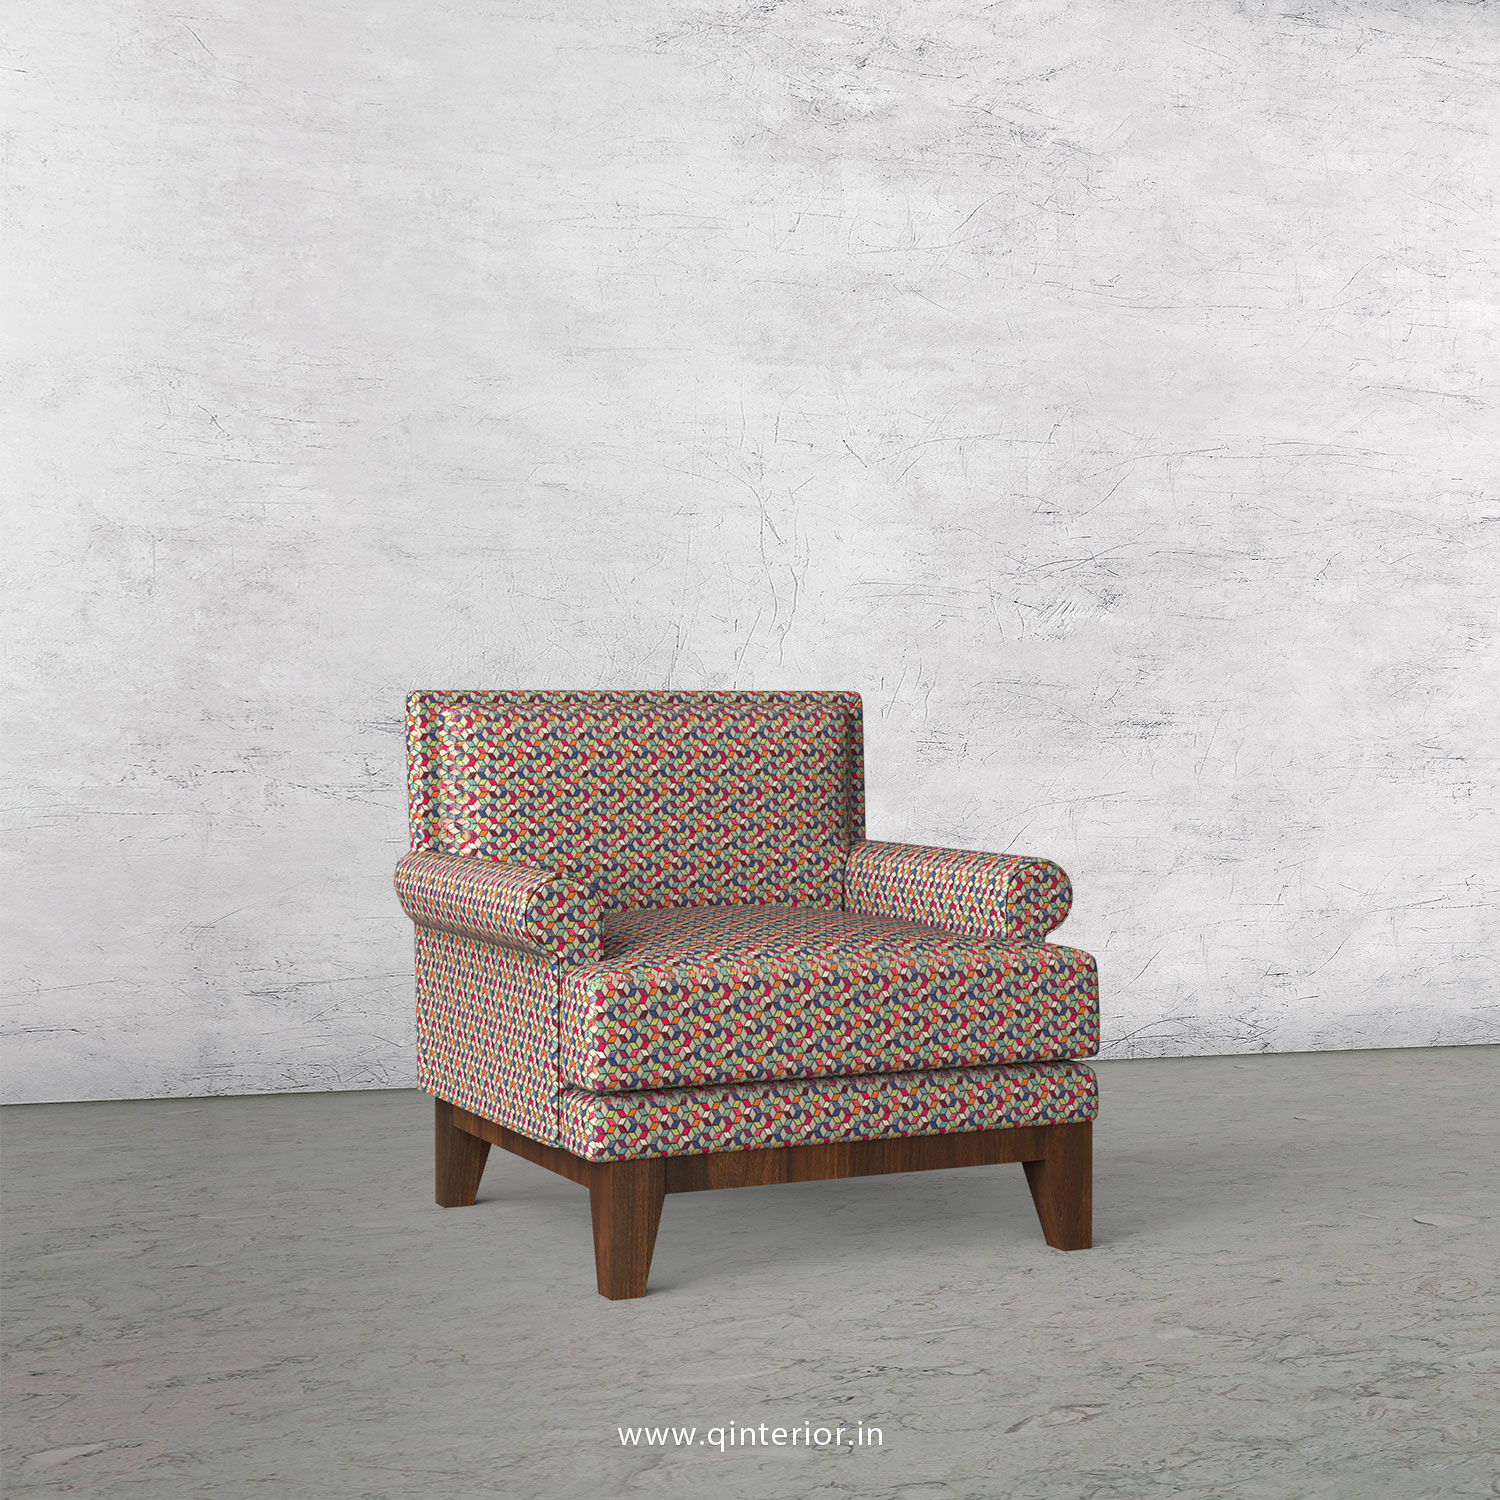 Aviana 1 Seater Sofa in Bargello Fabric - SFA001 BG09